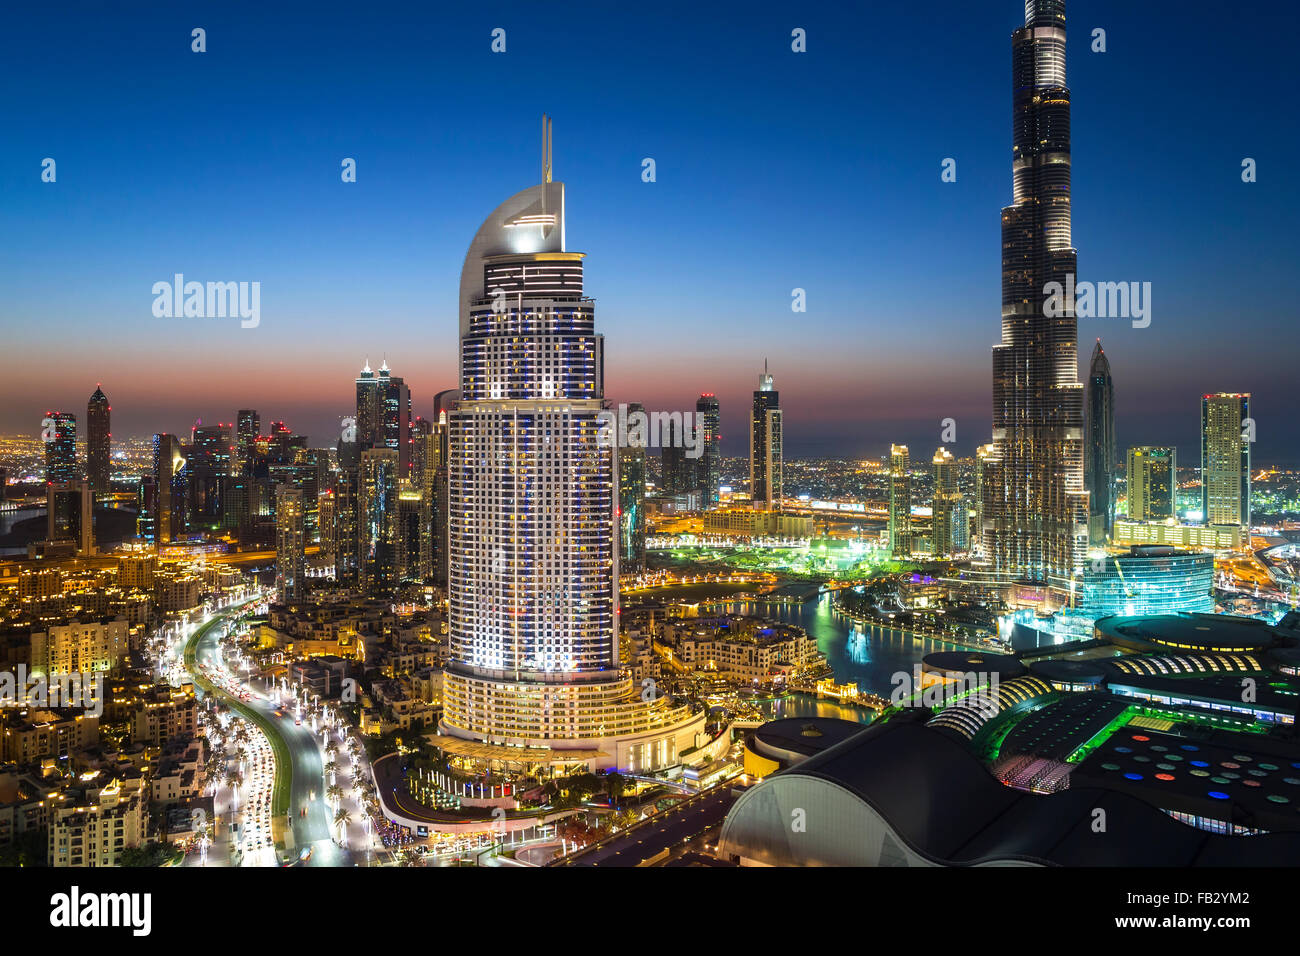 United Arab Emirates, Dubai, the Burj Khalifa, elevated view looking over the Dubai Mall - Stock Image